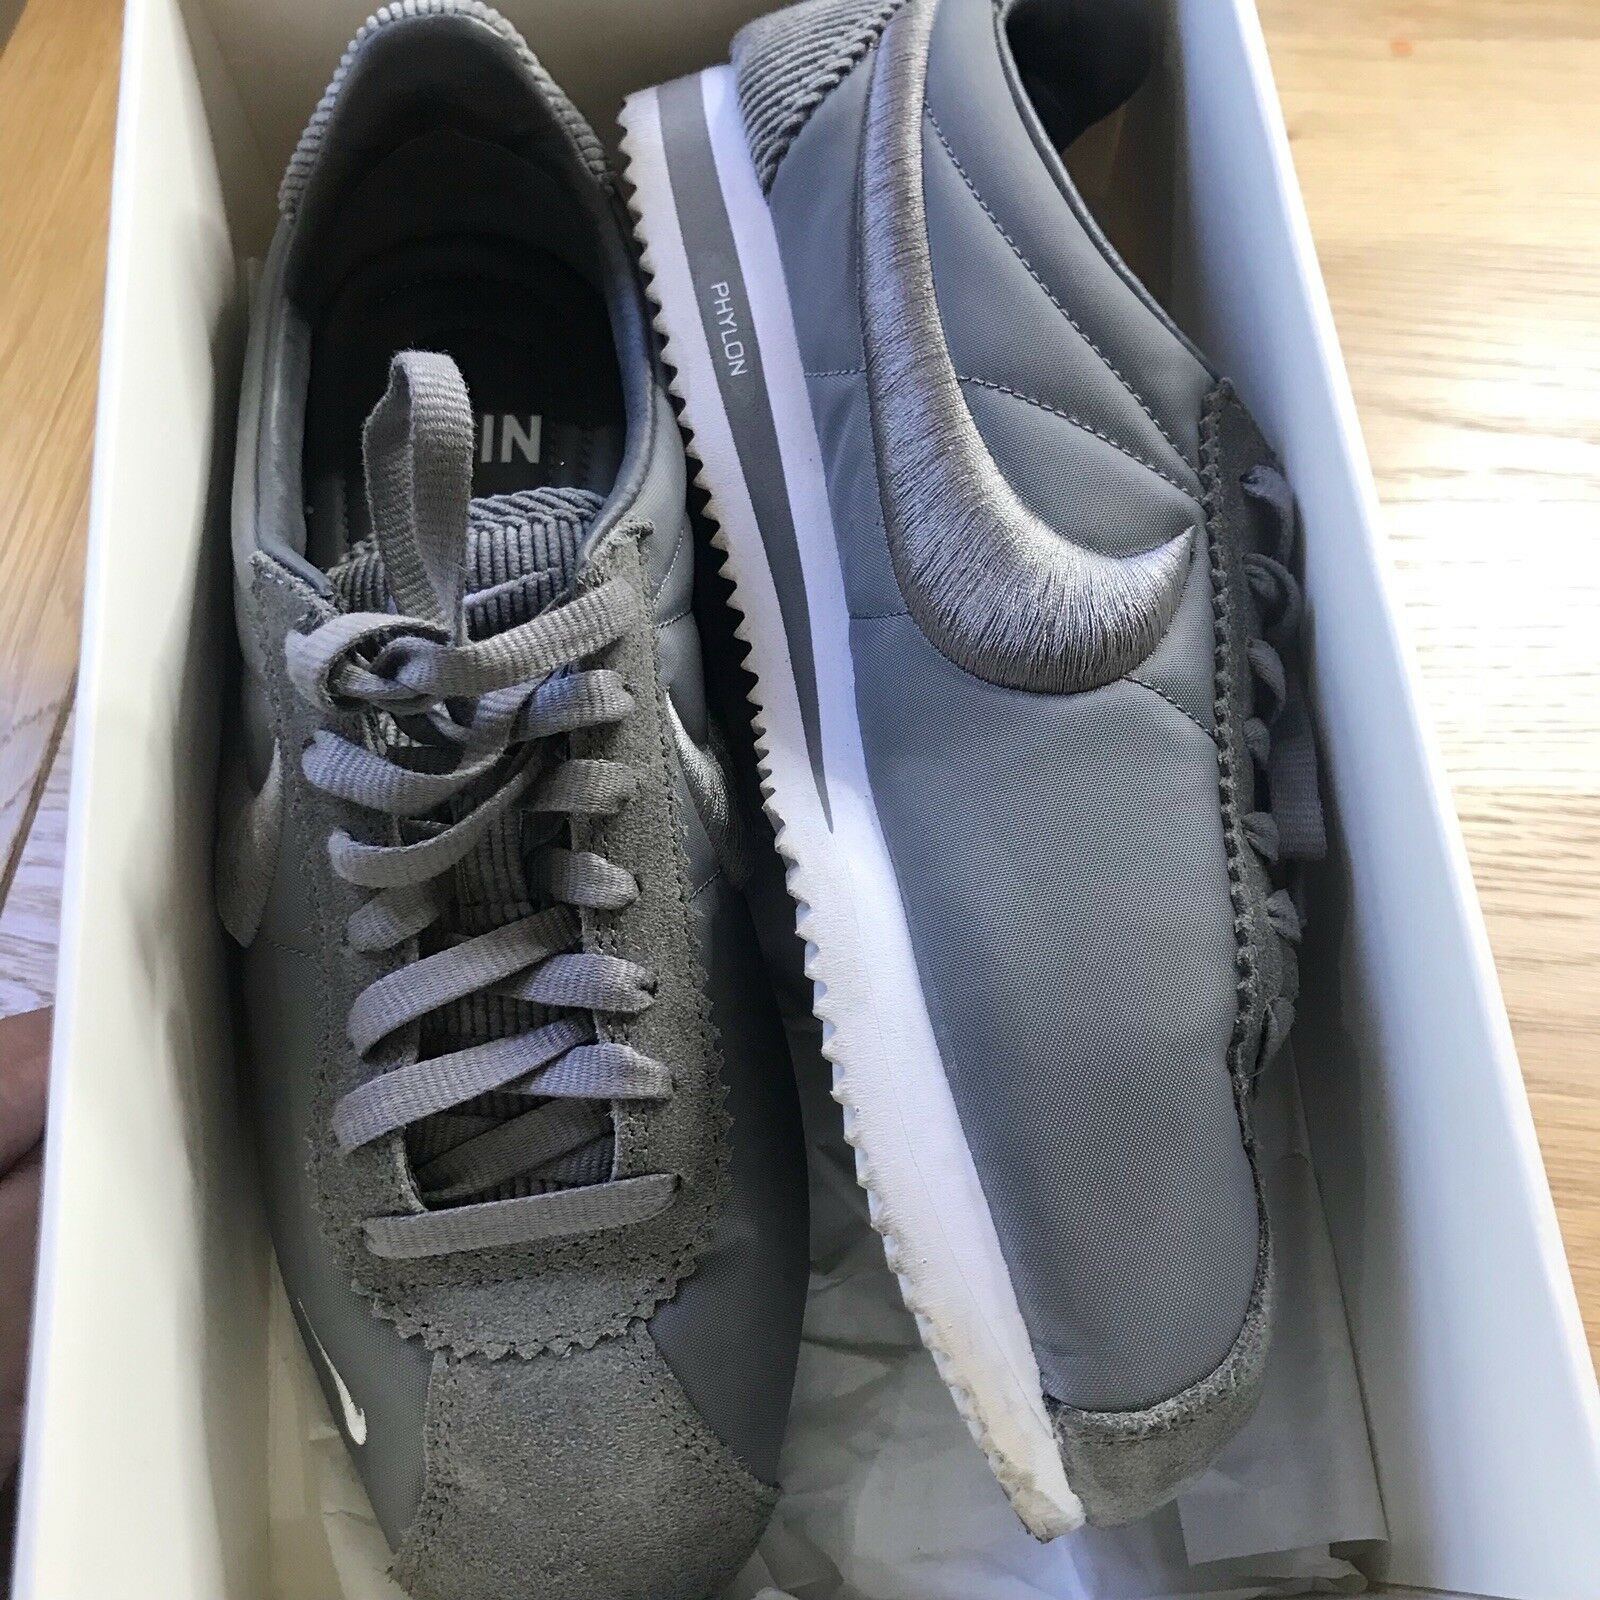 Nike classic Cortez SP, Canyon Grey and White. UK Comfortable Comfortable and good-looking